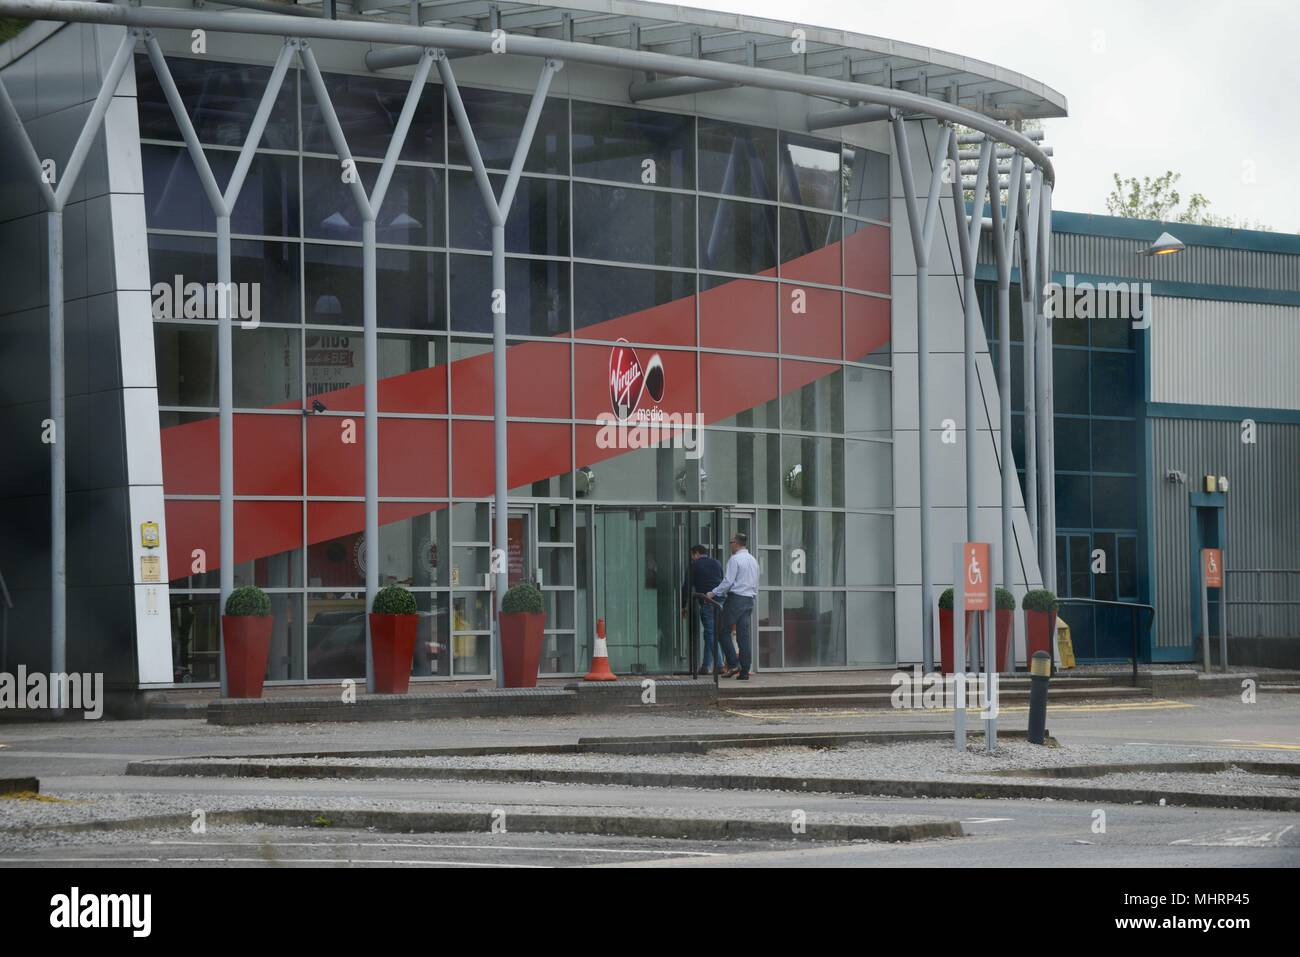 Swansea, South Wales, UK. May 3rd 2018 The Virgin Media call centre in Swansea, South Wales, where news broke today that almost 800 jobs are to go as the company plans to call the Swansea base. Credit: Robert Melen/Alamy Live News. Stock Photo